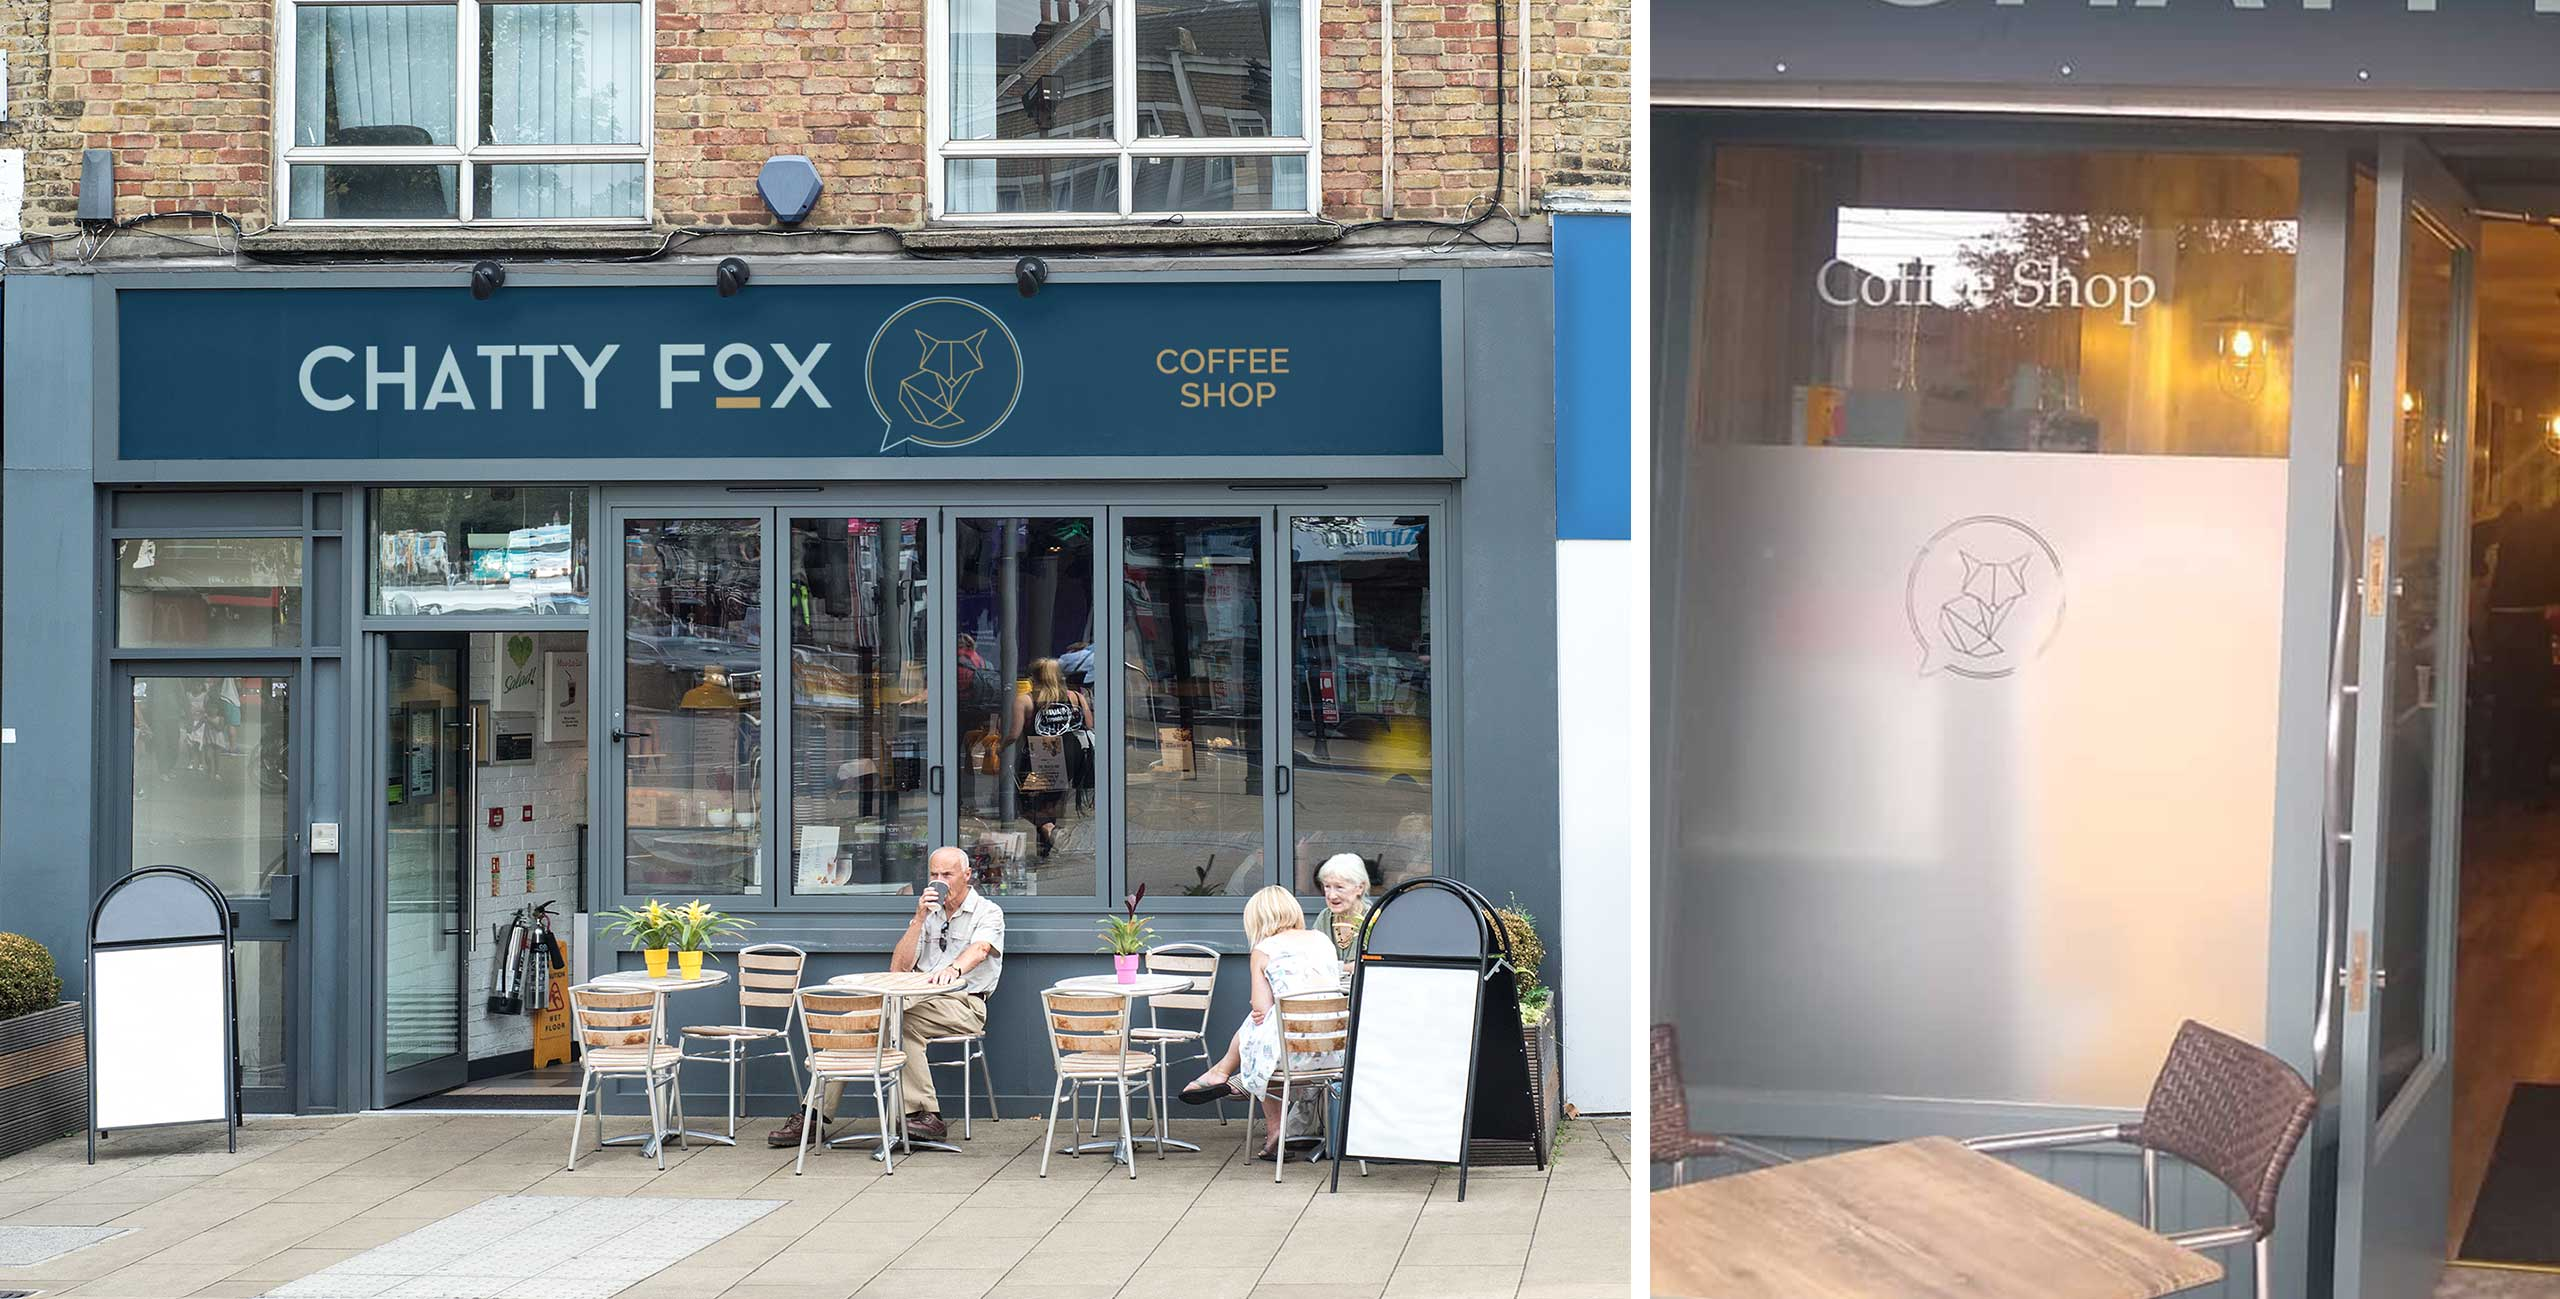 Chatty Fox Exterior Signage